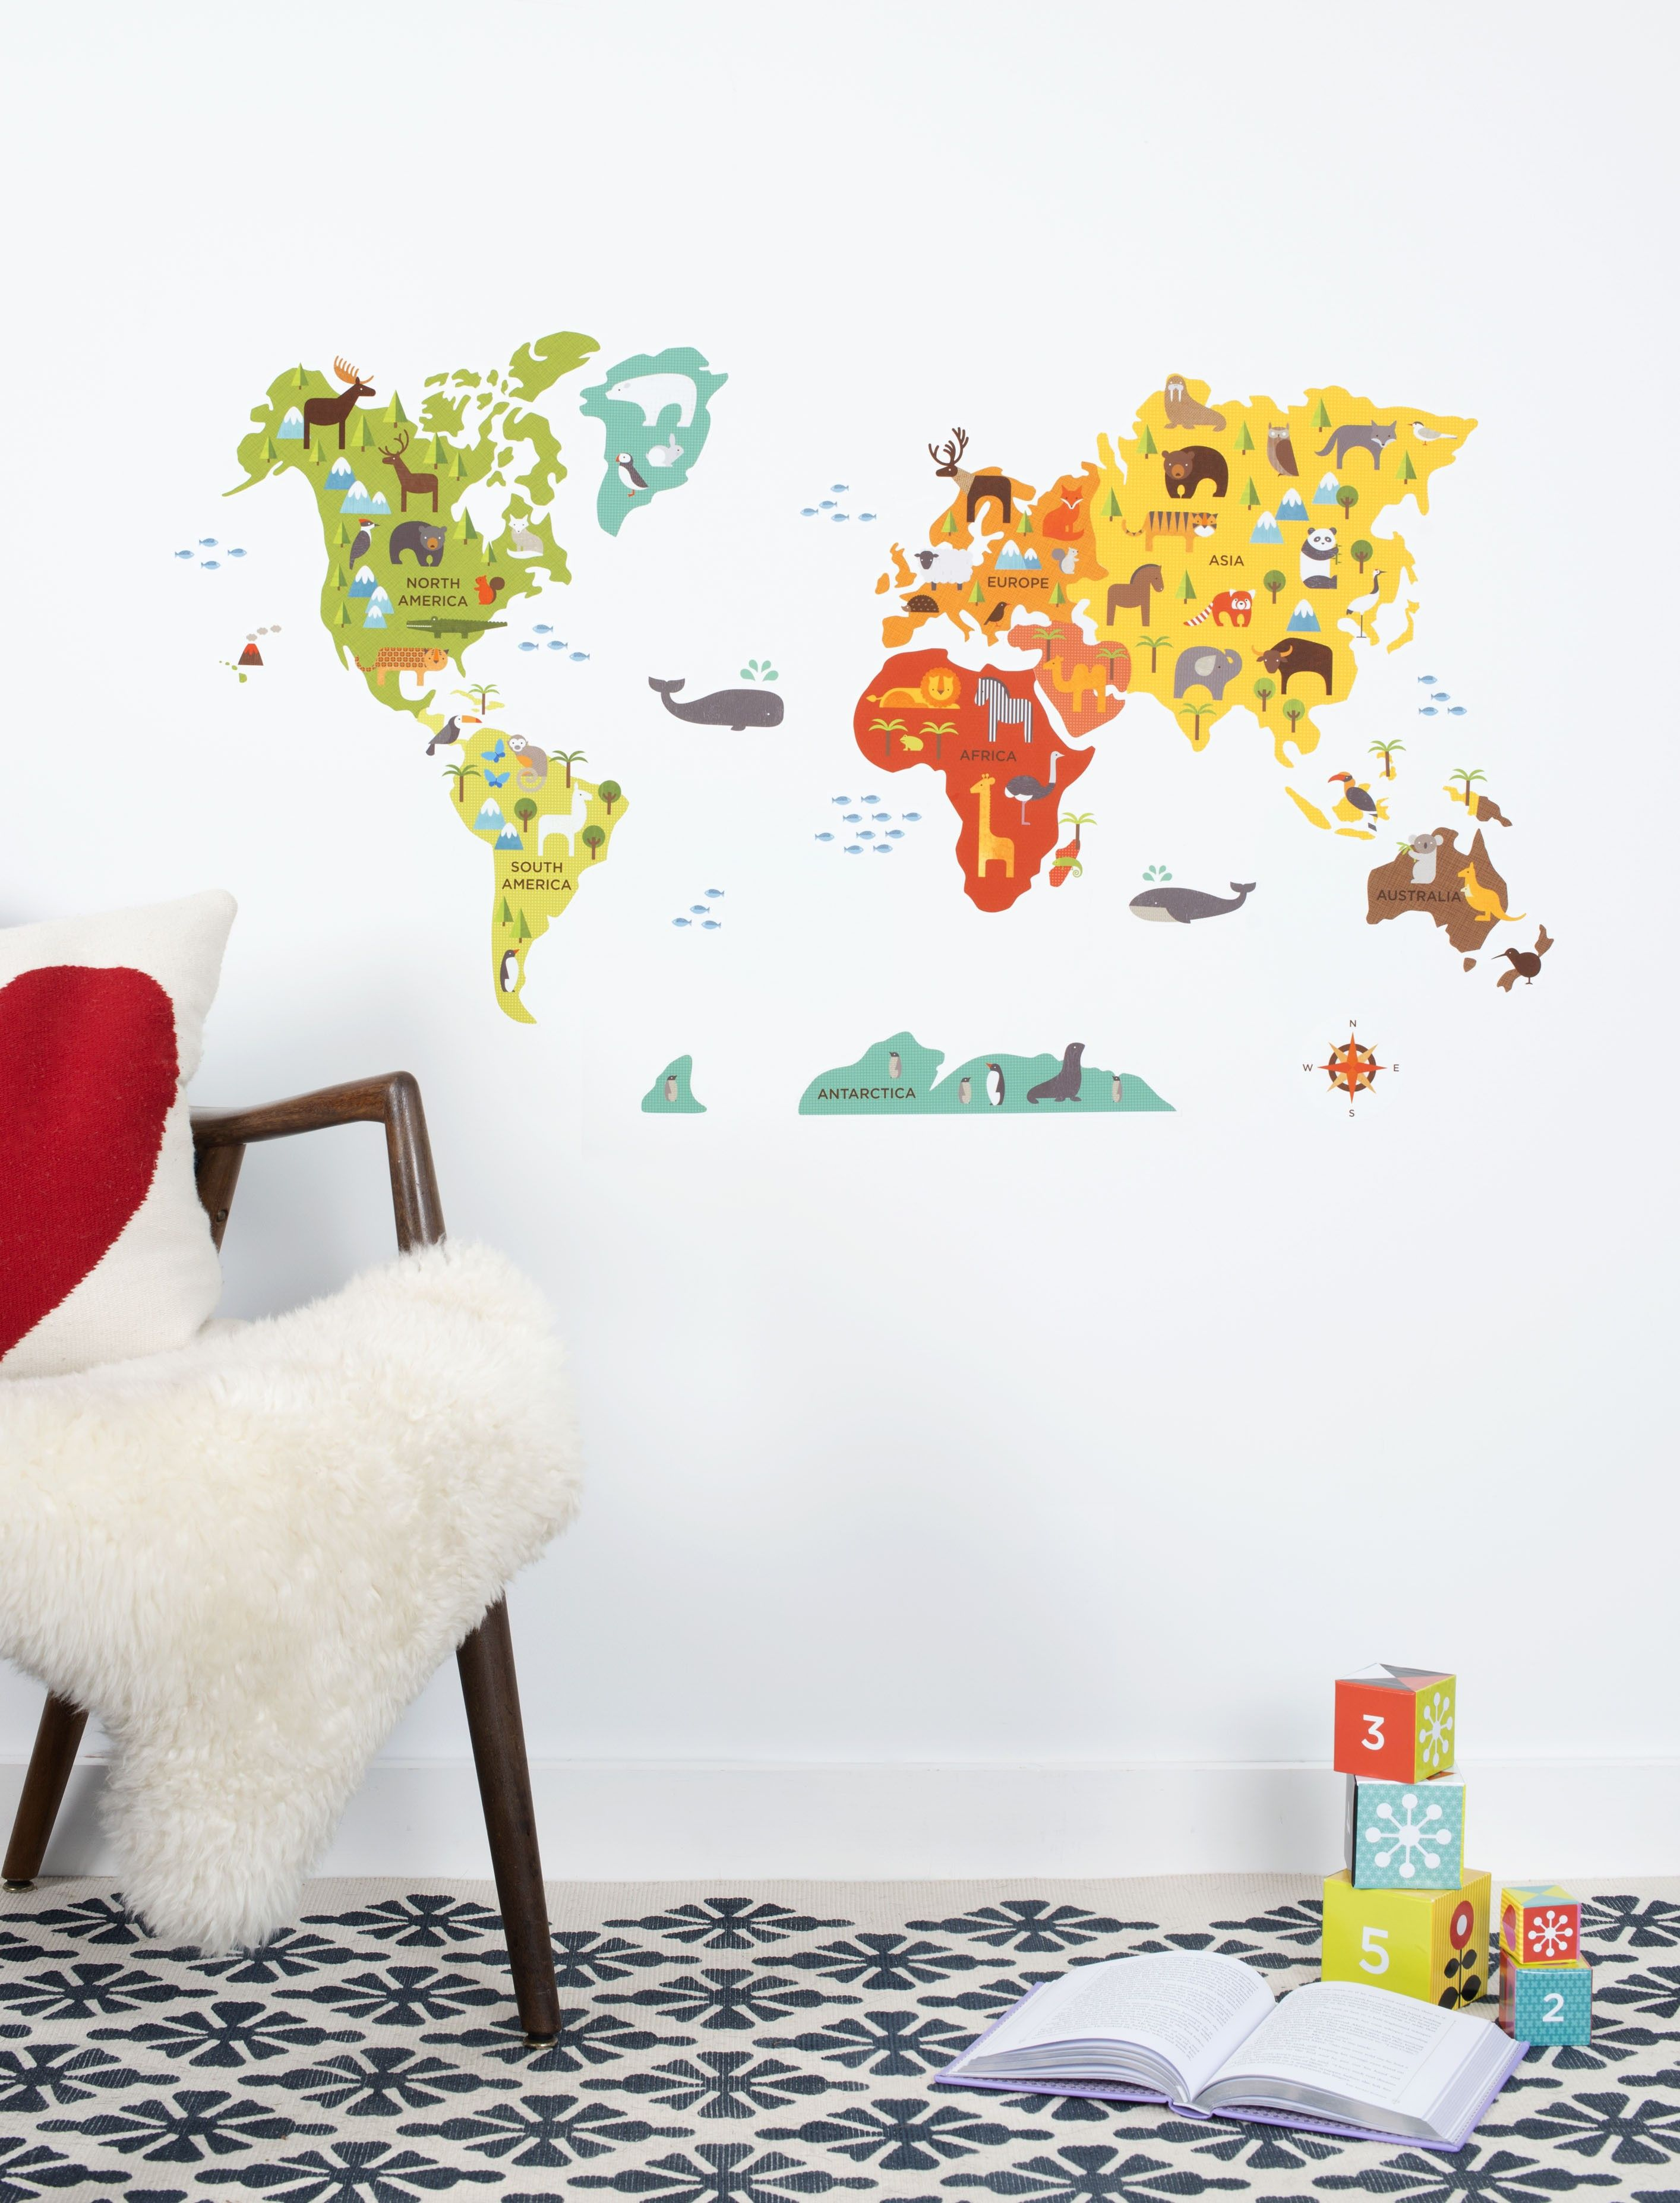 Petit collages adorable world map wall decal is a bright and petit collages adorable world map wall decal is a bright and colorful way to make geography fun little ones will love the animal illustrations gumiabroncs Image collections